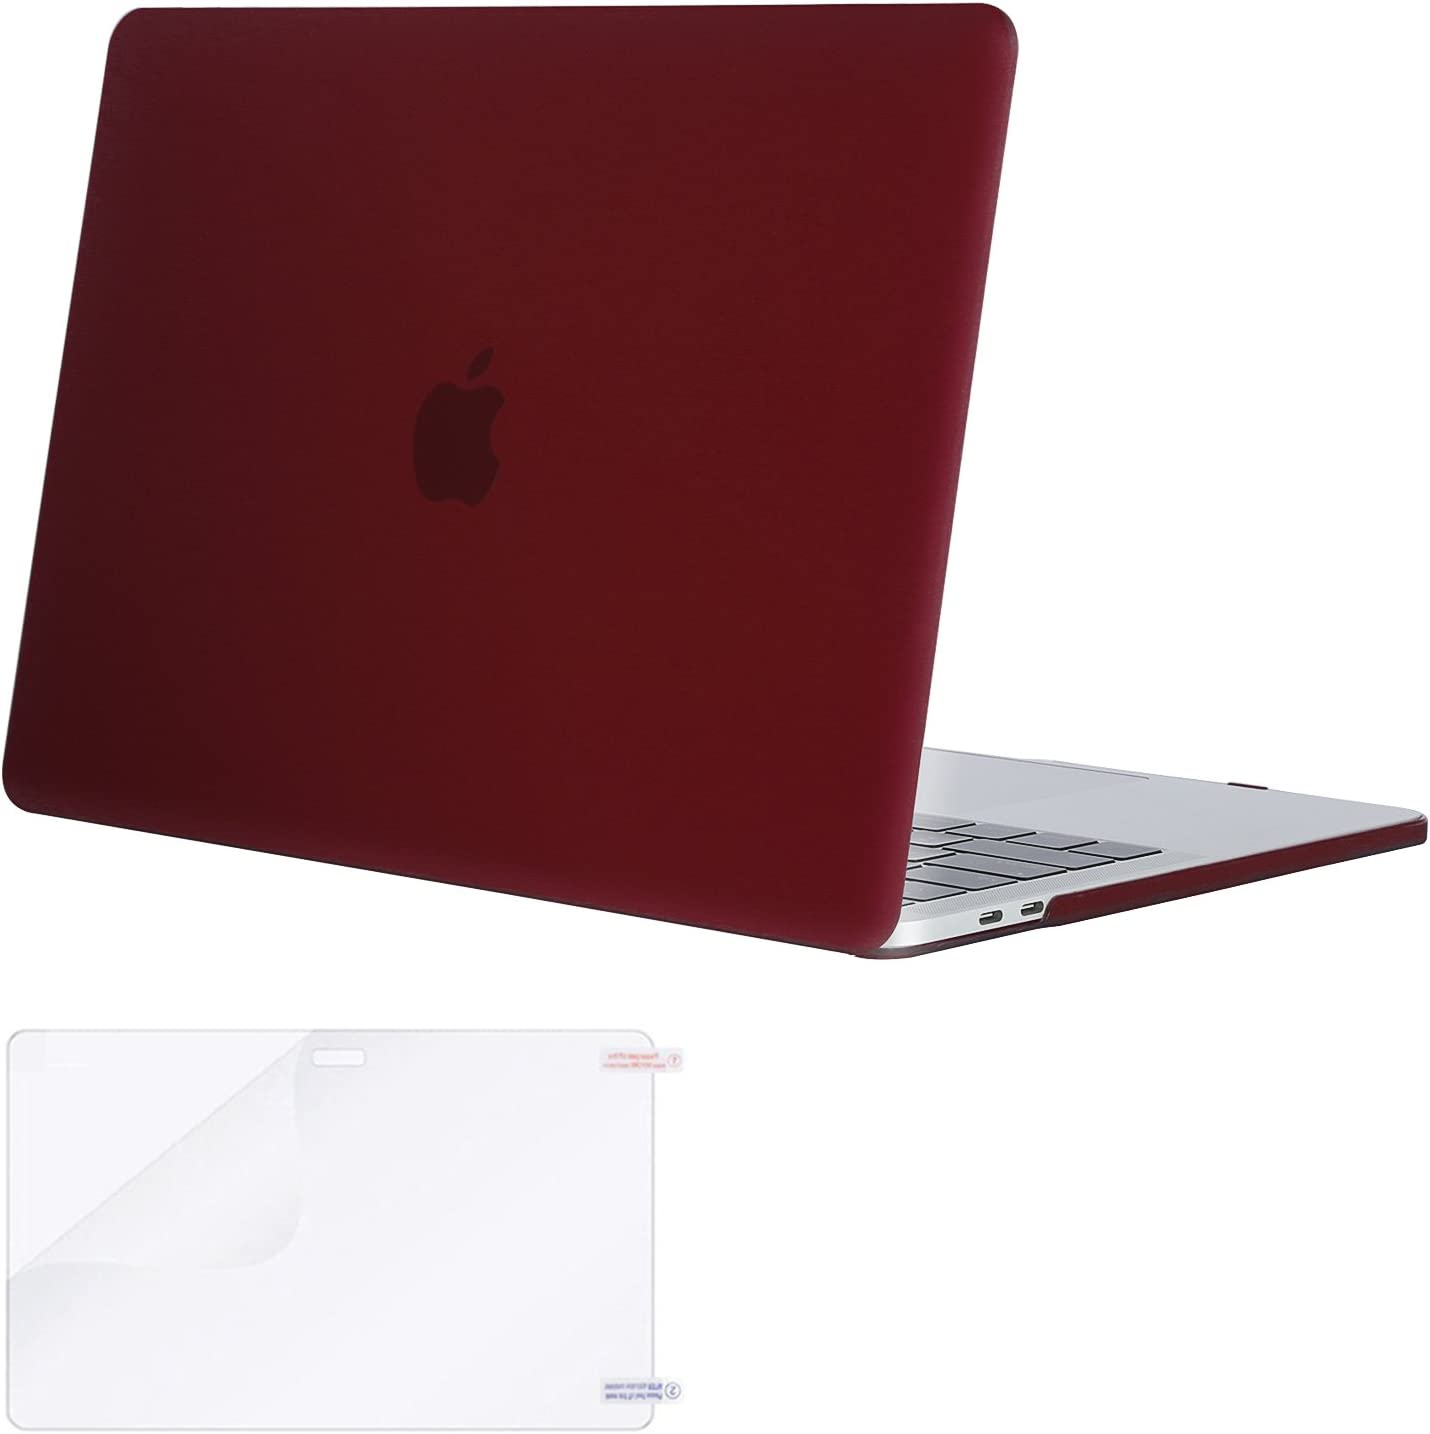 MOSISO MacBook Pro 13 inch Case 2019 2018 2017 2016 Release A2159 A1989 A1706 A1708, Plastic Hard Shell Case&Screen Protector Compatible with MacBook Pro 13 inch with/Without Touch Bar, Marsala Red